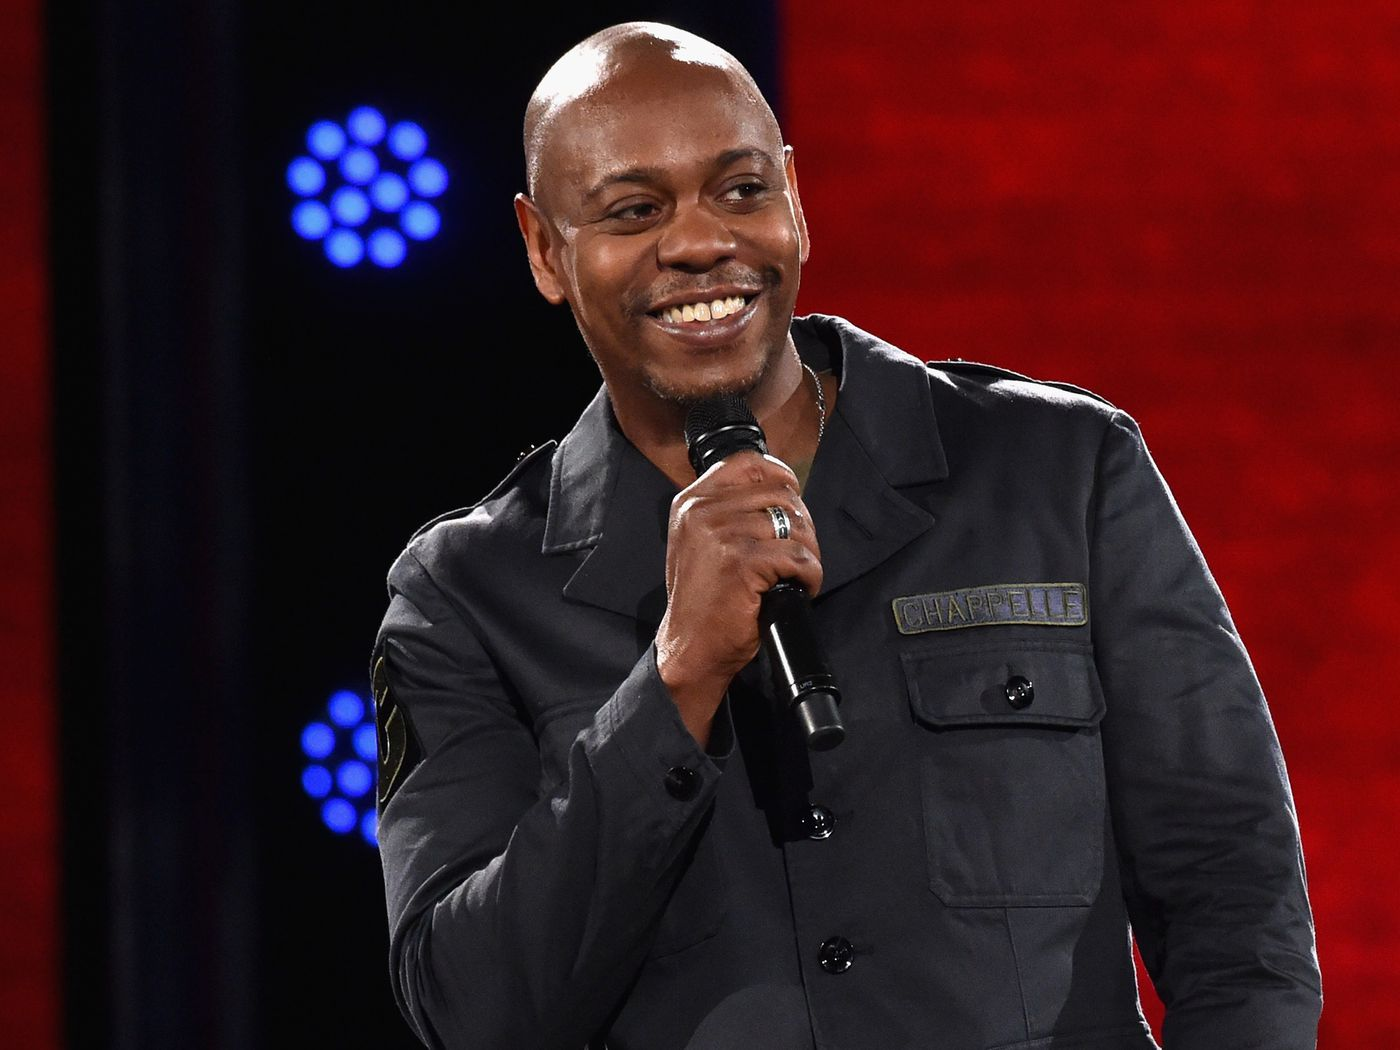 American comedian Dave Chappelle wants to follow the footsteps of Stevie Wonder by relocating to Ghana